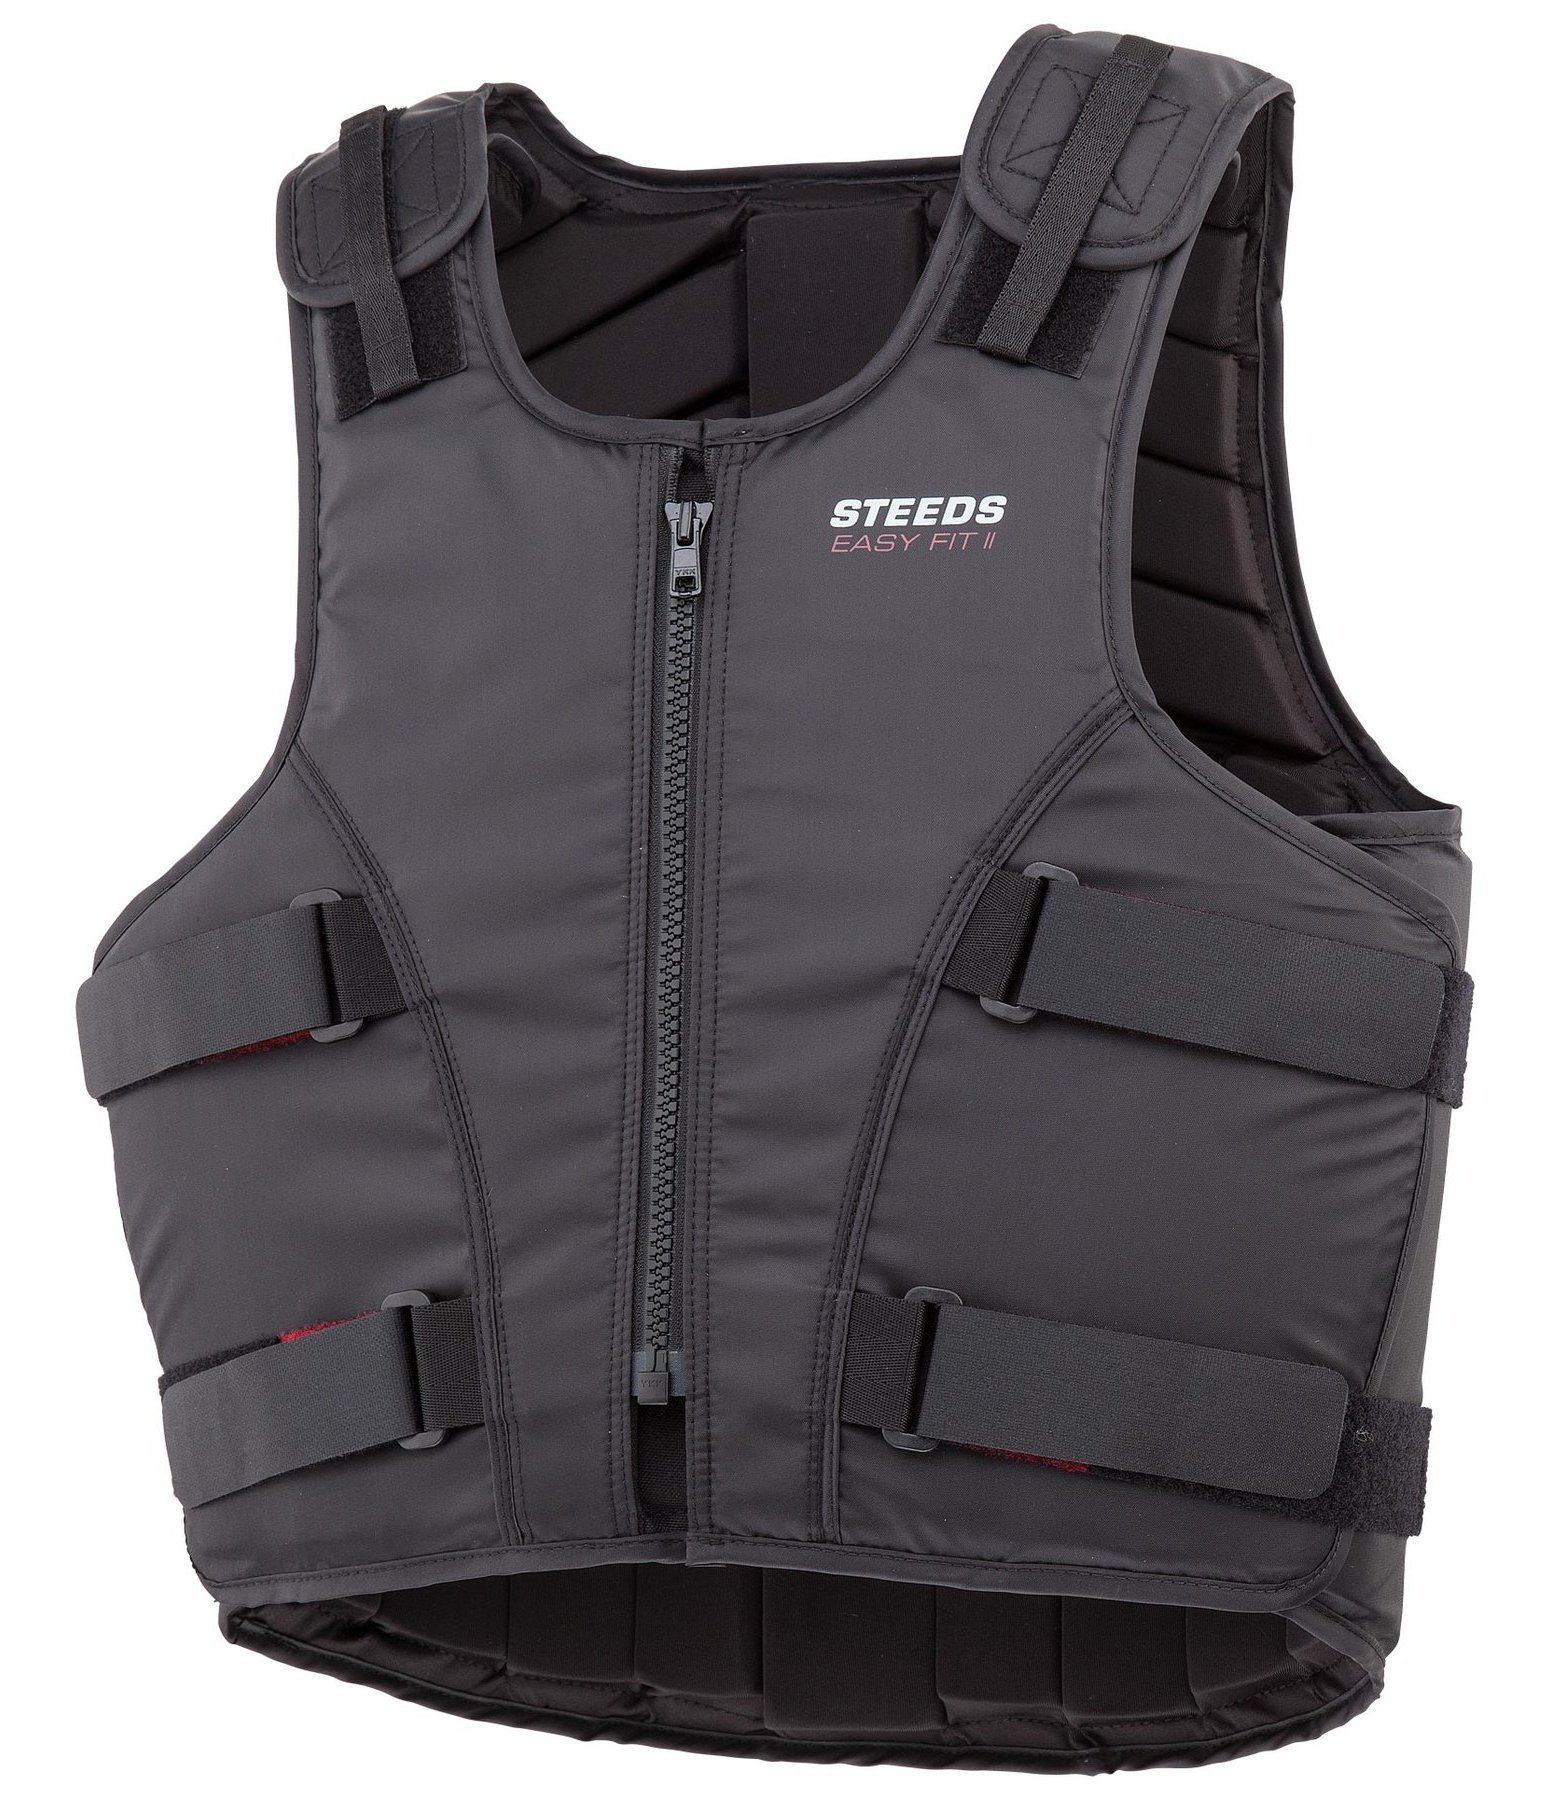 Body Protector Easy Fit II